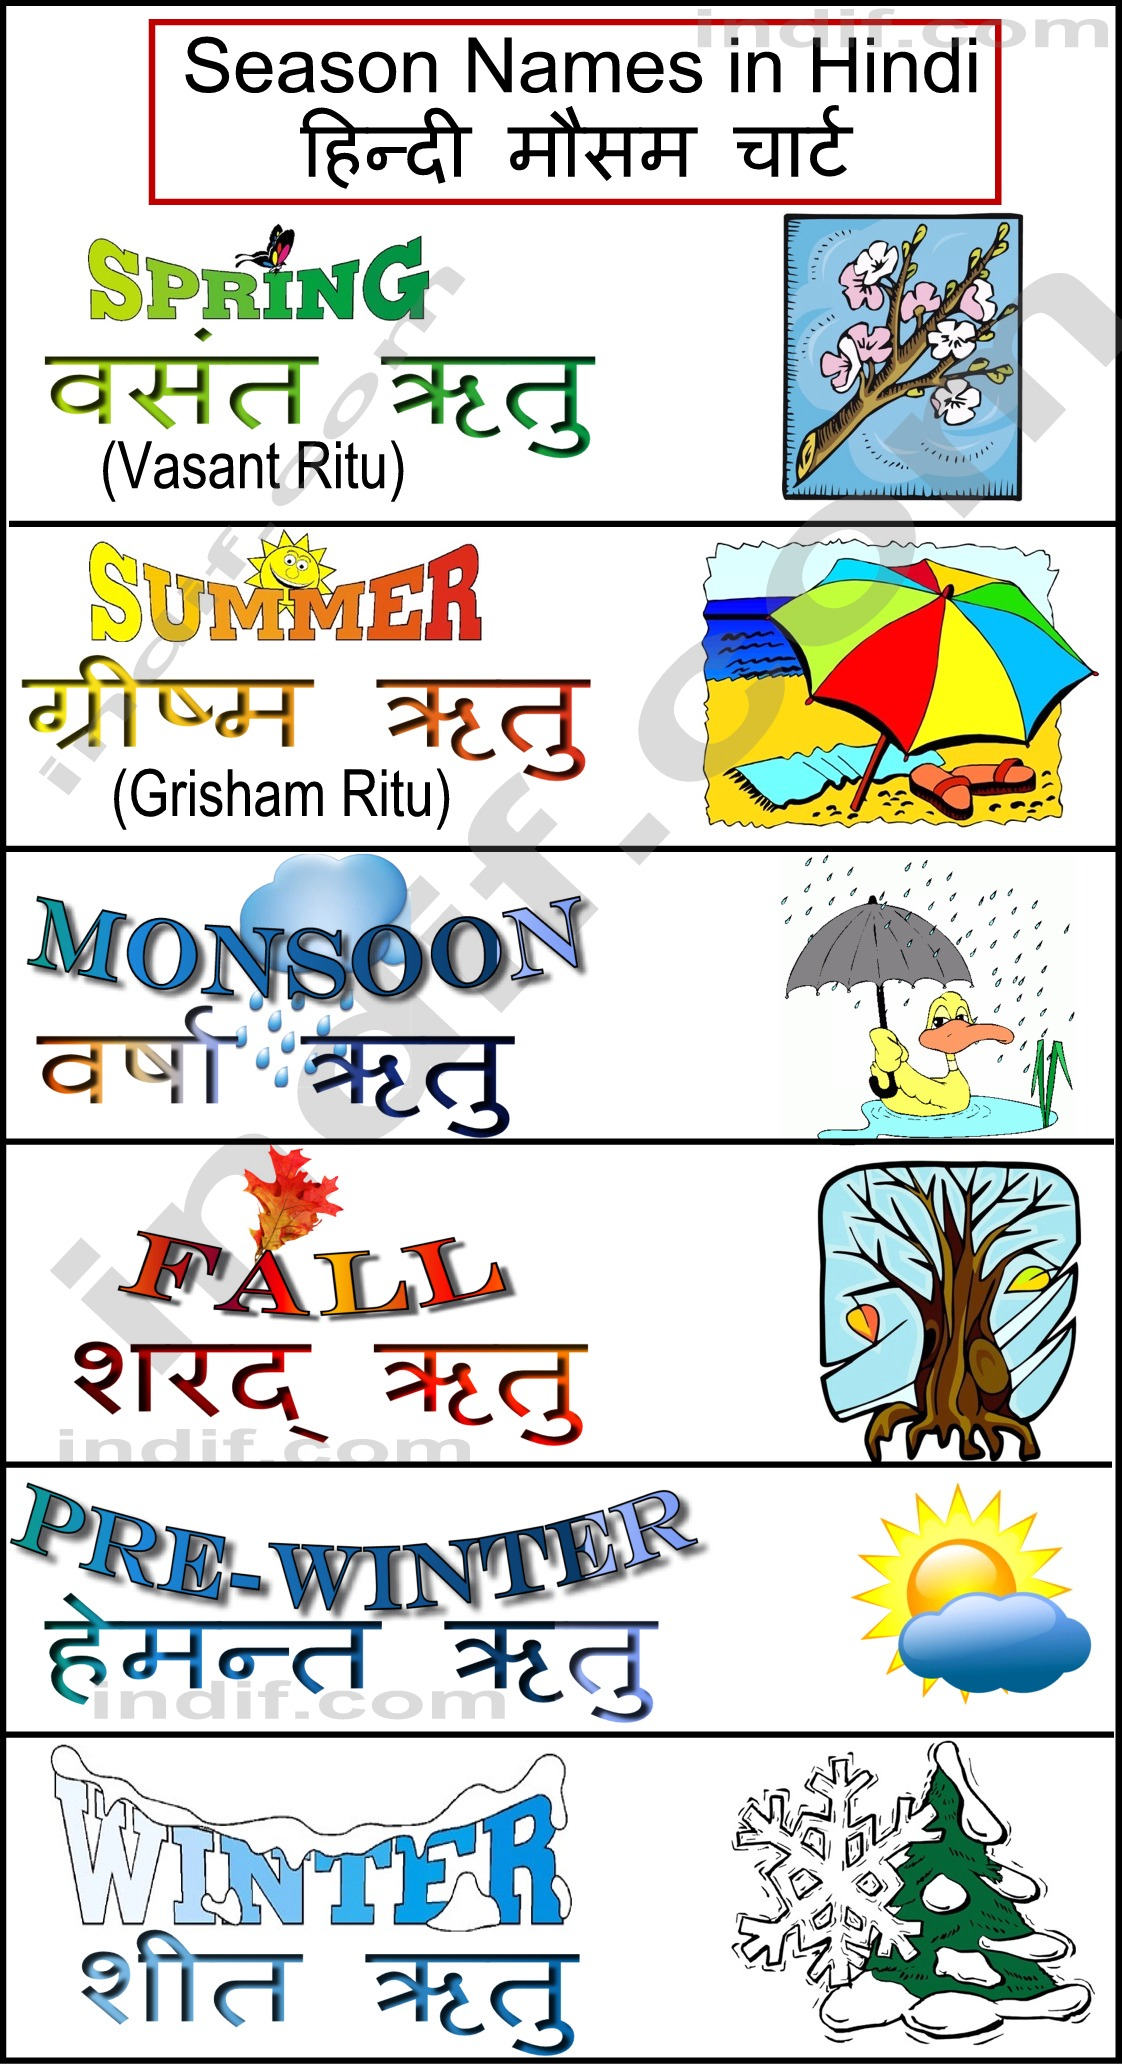 rainy season in hindi for a child During the rainy season, visitors still flock to the island to enjoy a wide range of  activities such as shopping for duty-free goods or enjoying pampering massages .